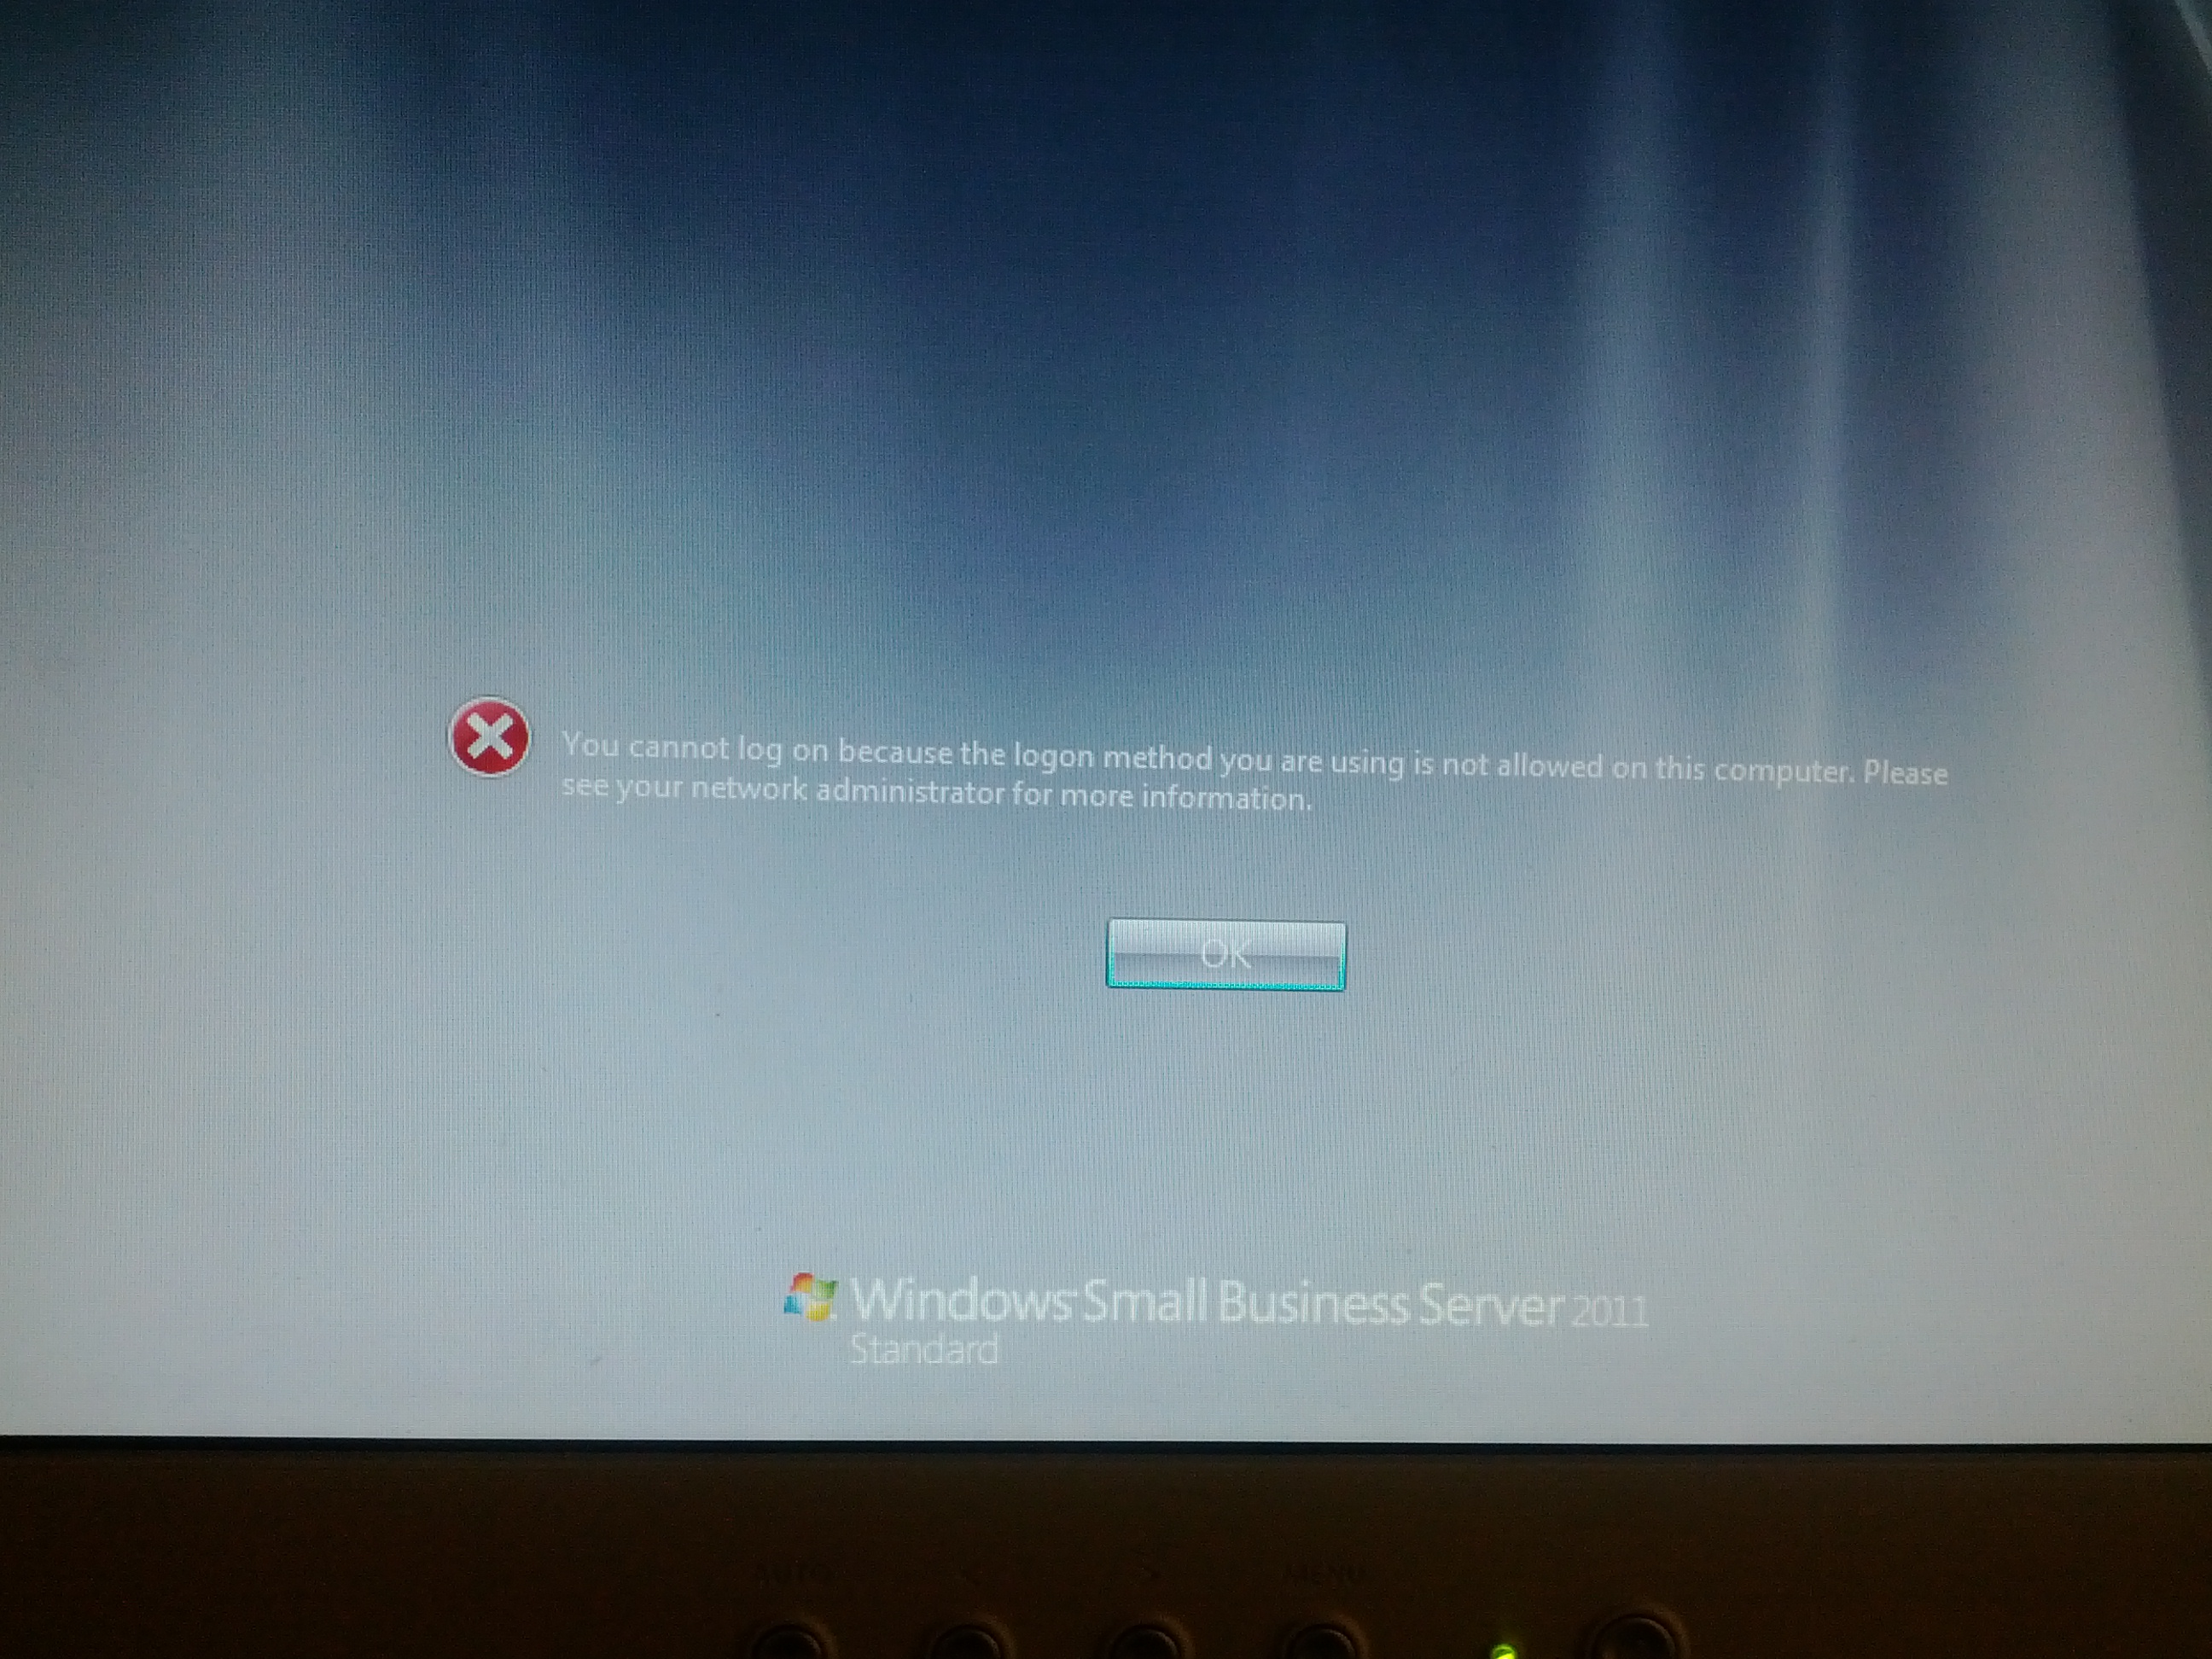 windows 7 cannot log in